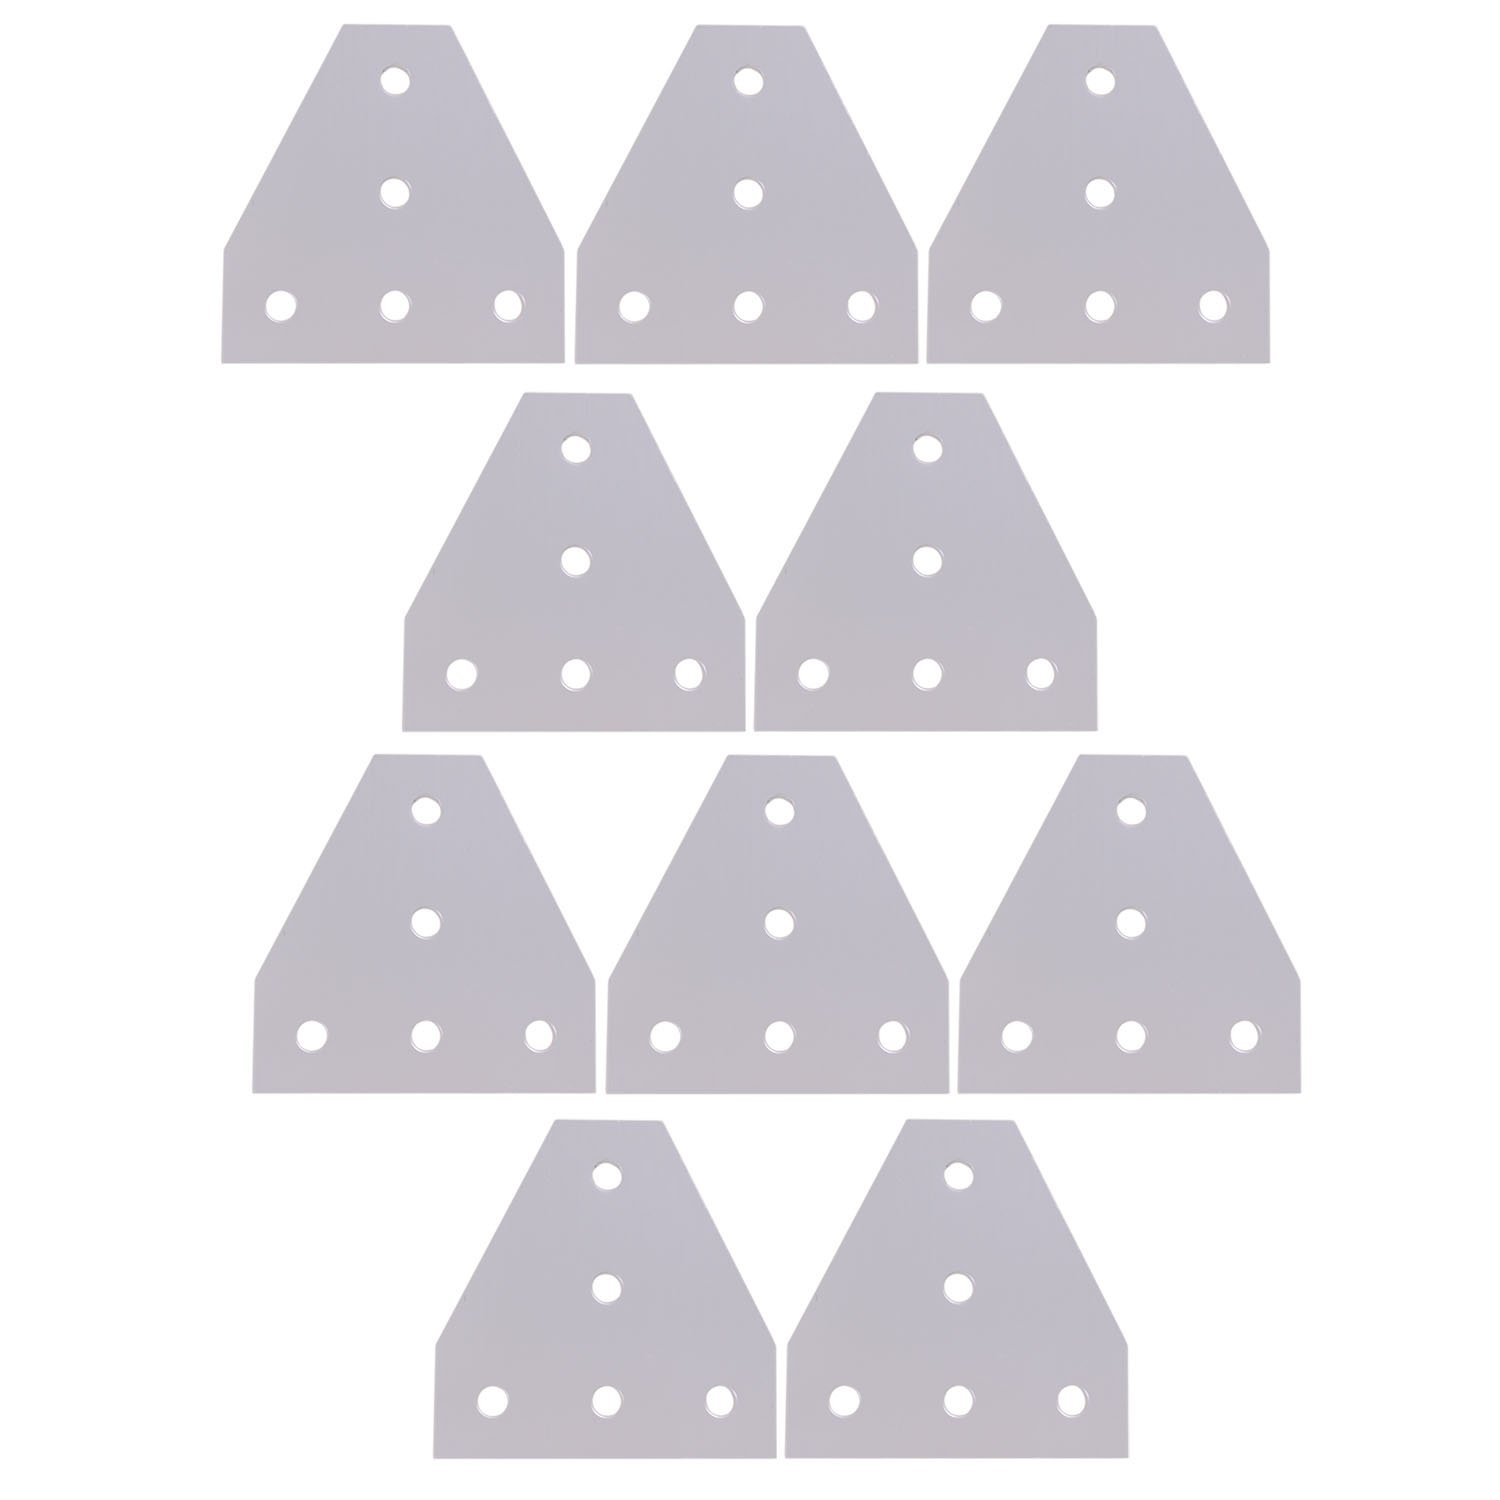 Mergorun,3D Printer Aluminum T Shaped 5 Hole 90x90x4mm Joining Plate for 3030 v-slot/T-slot Aluminum Extrusion Pack of 10 by Mergorun (Image #1)